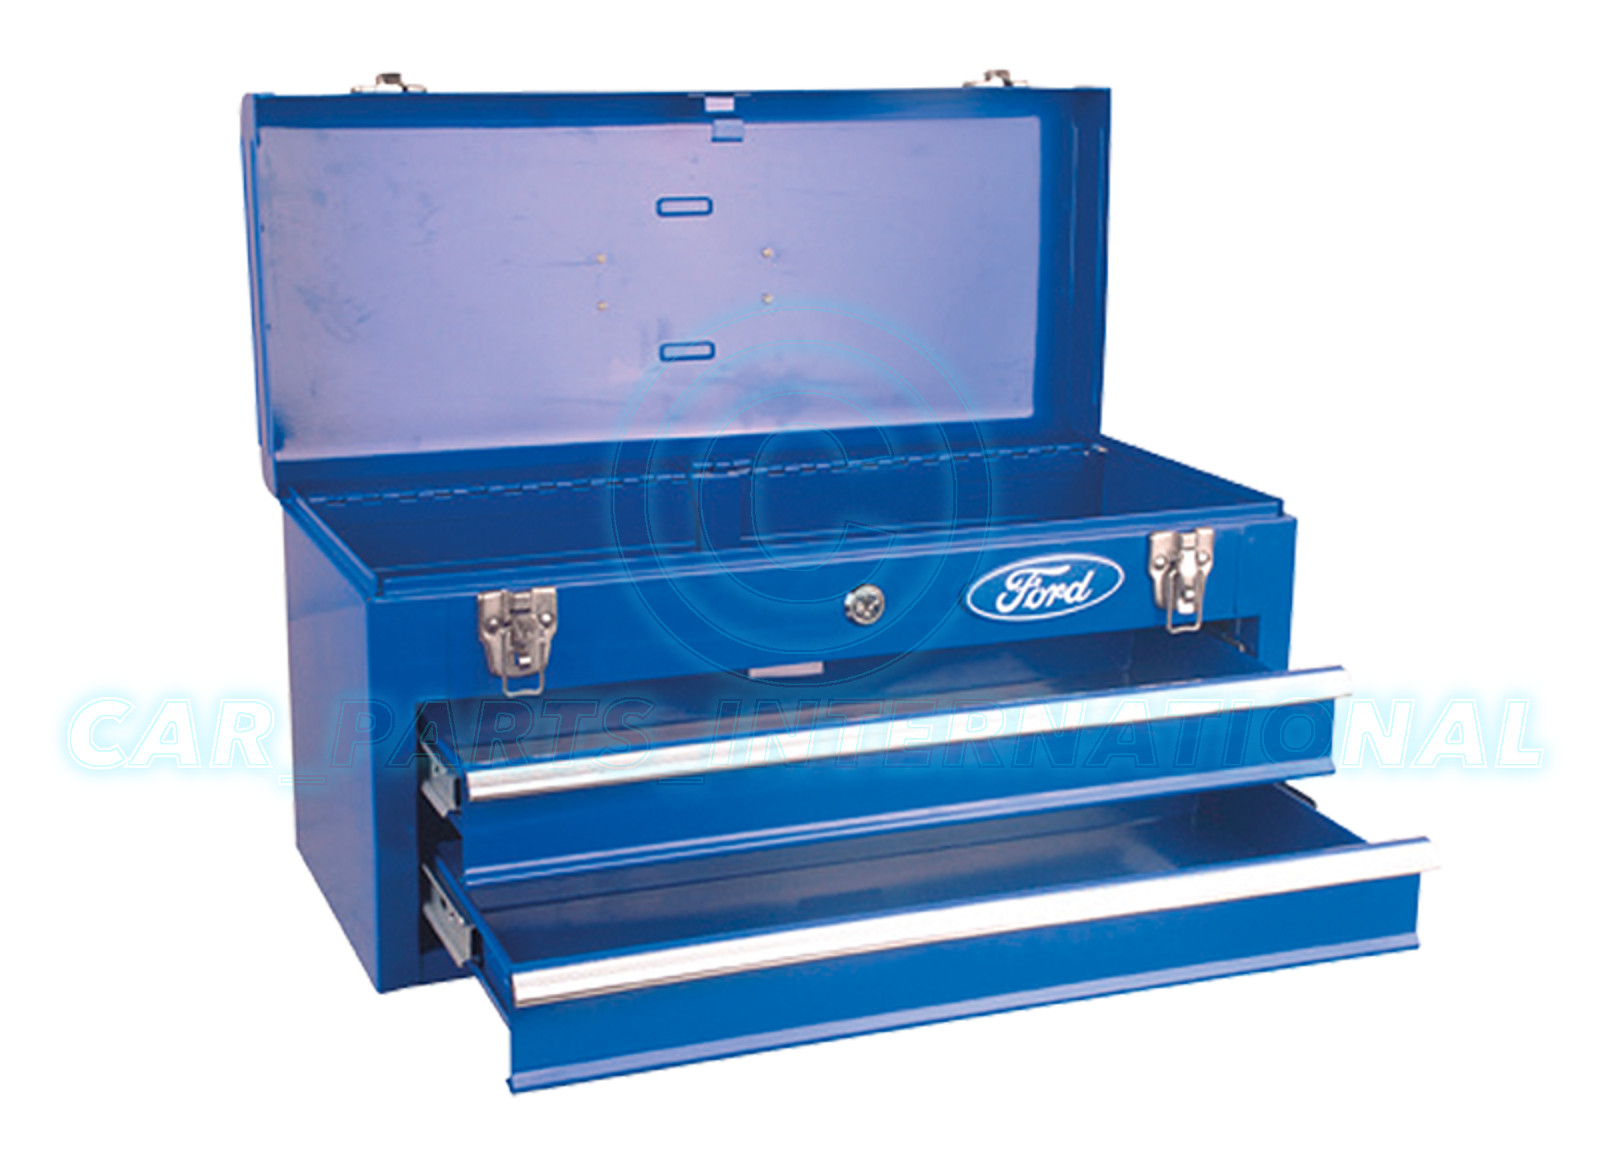 Ford Tool Box : Ford tools metal tool top box with drawers genuine